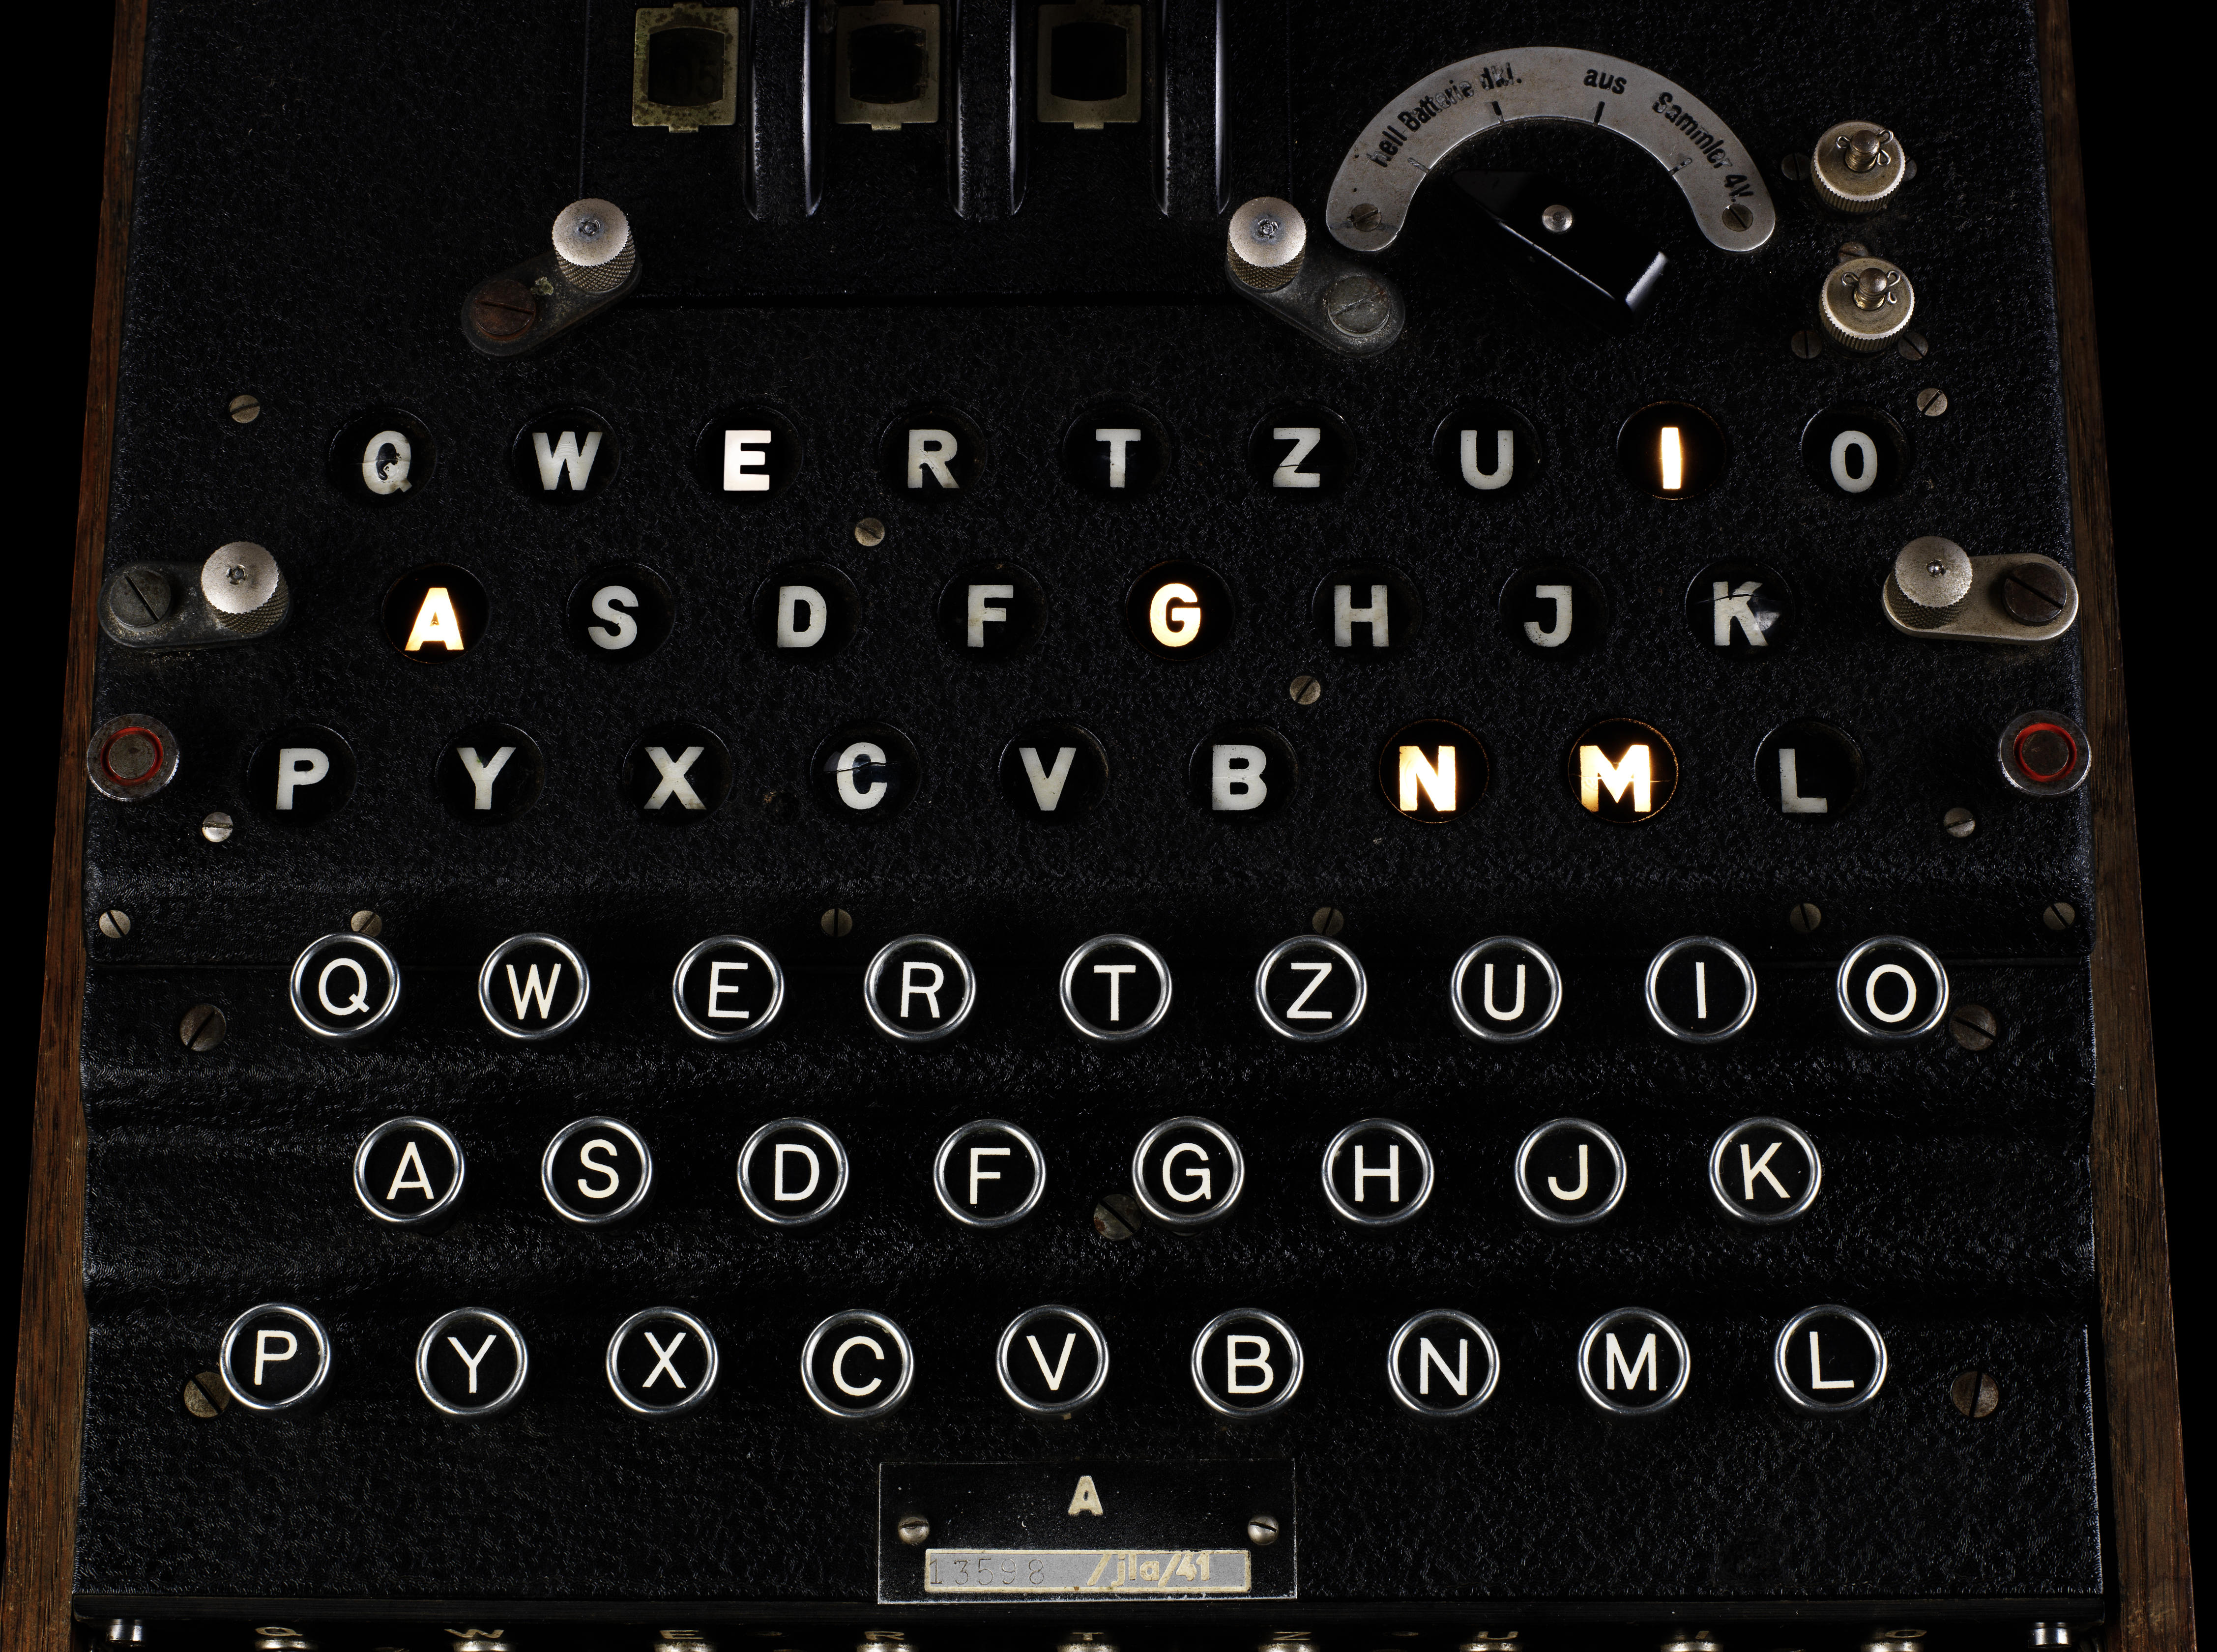 An Enigma machine worth coveting | historical tales